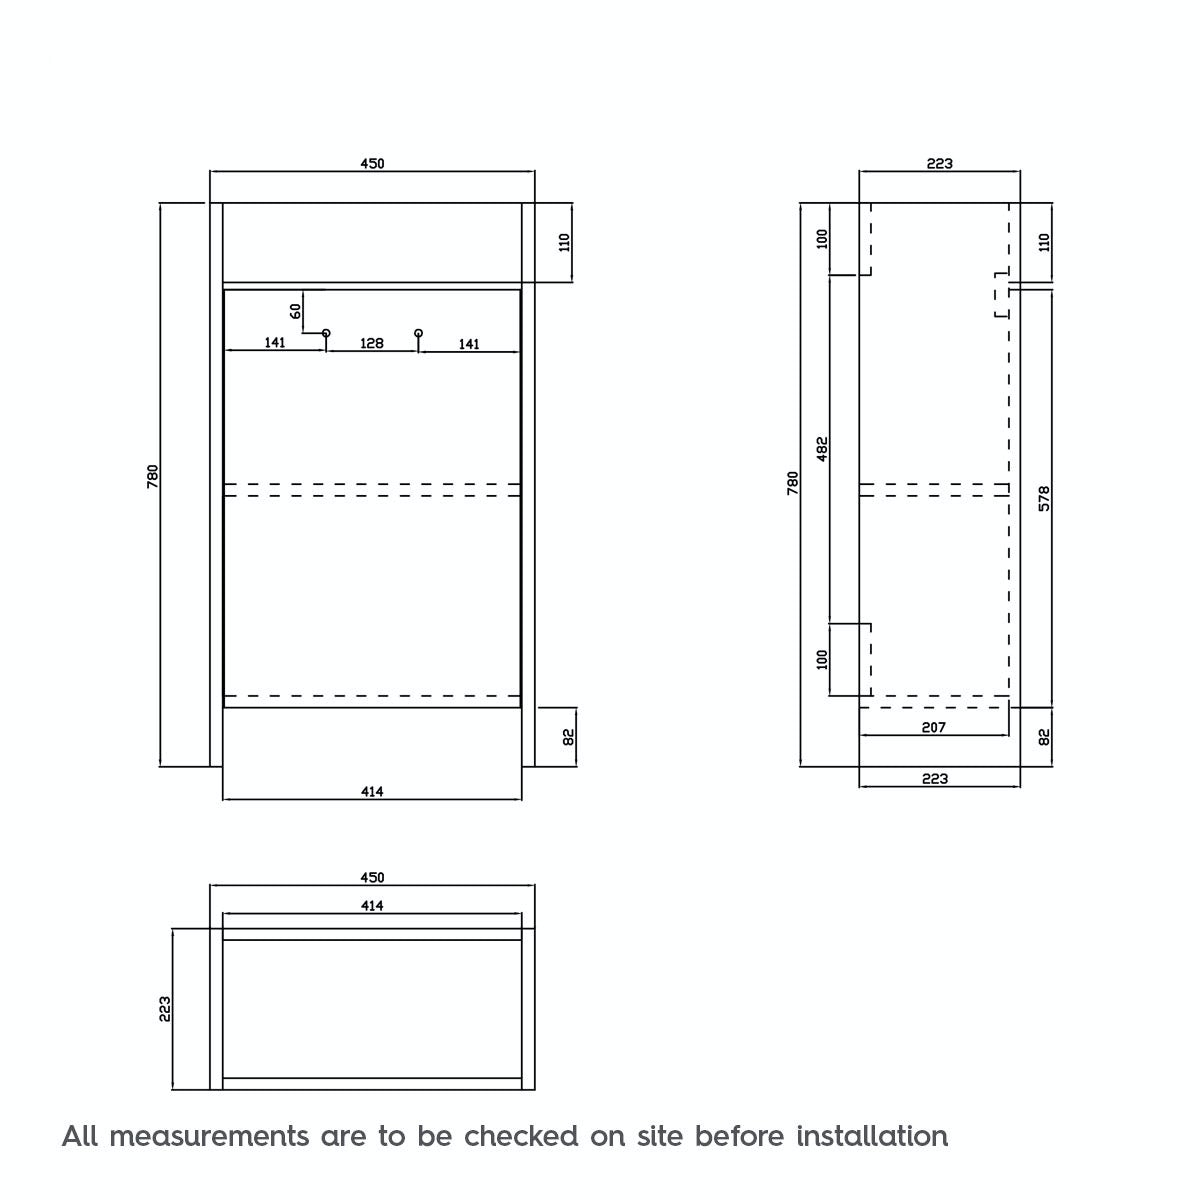 Dimensions for Clarity white cloakroom unit with basin 450mm